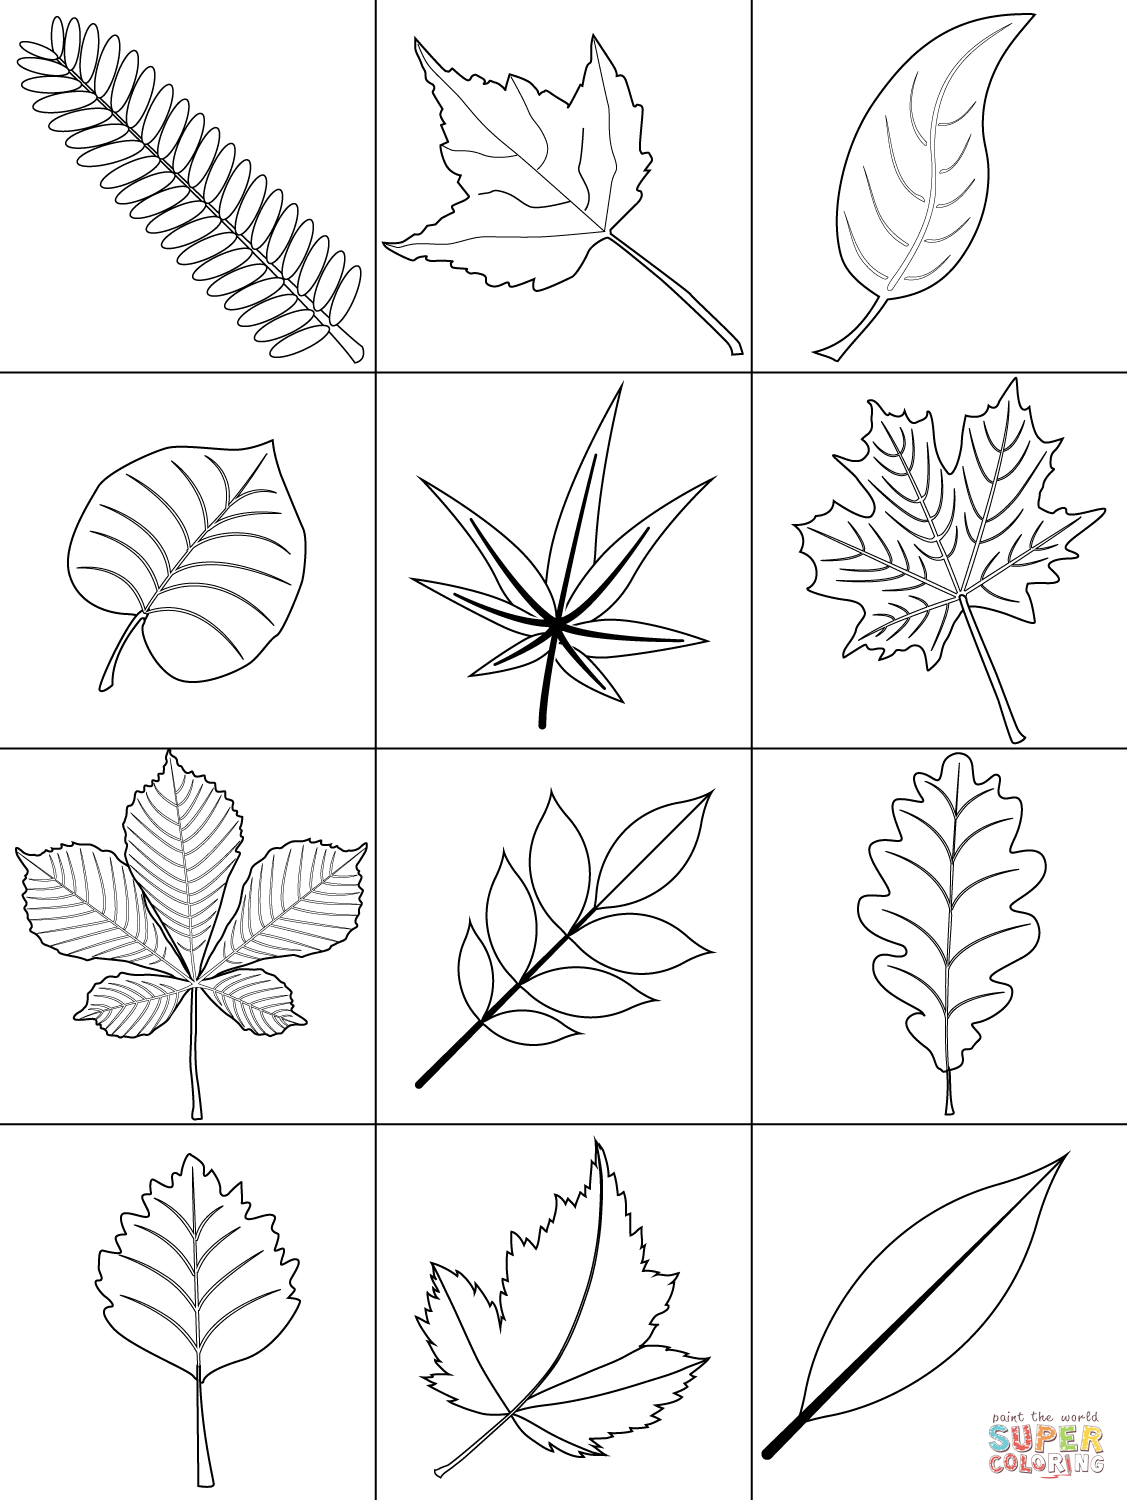 Autumn Leaves Coloring Page | Free Printable Coloring Pages - Free Printable Pictures Of Autumn Leaves